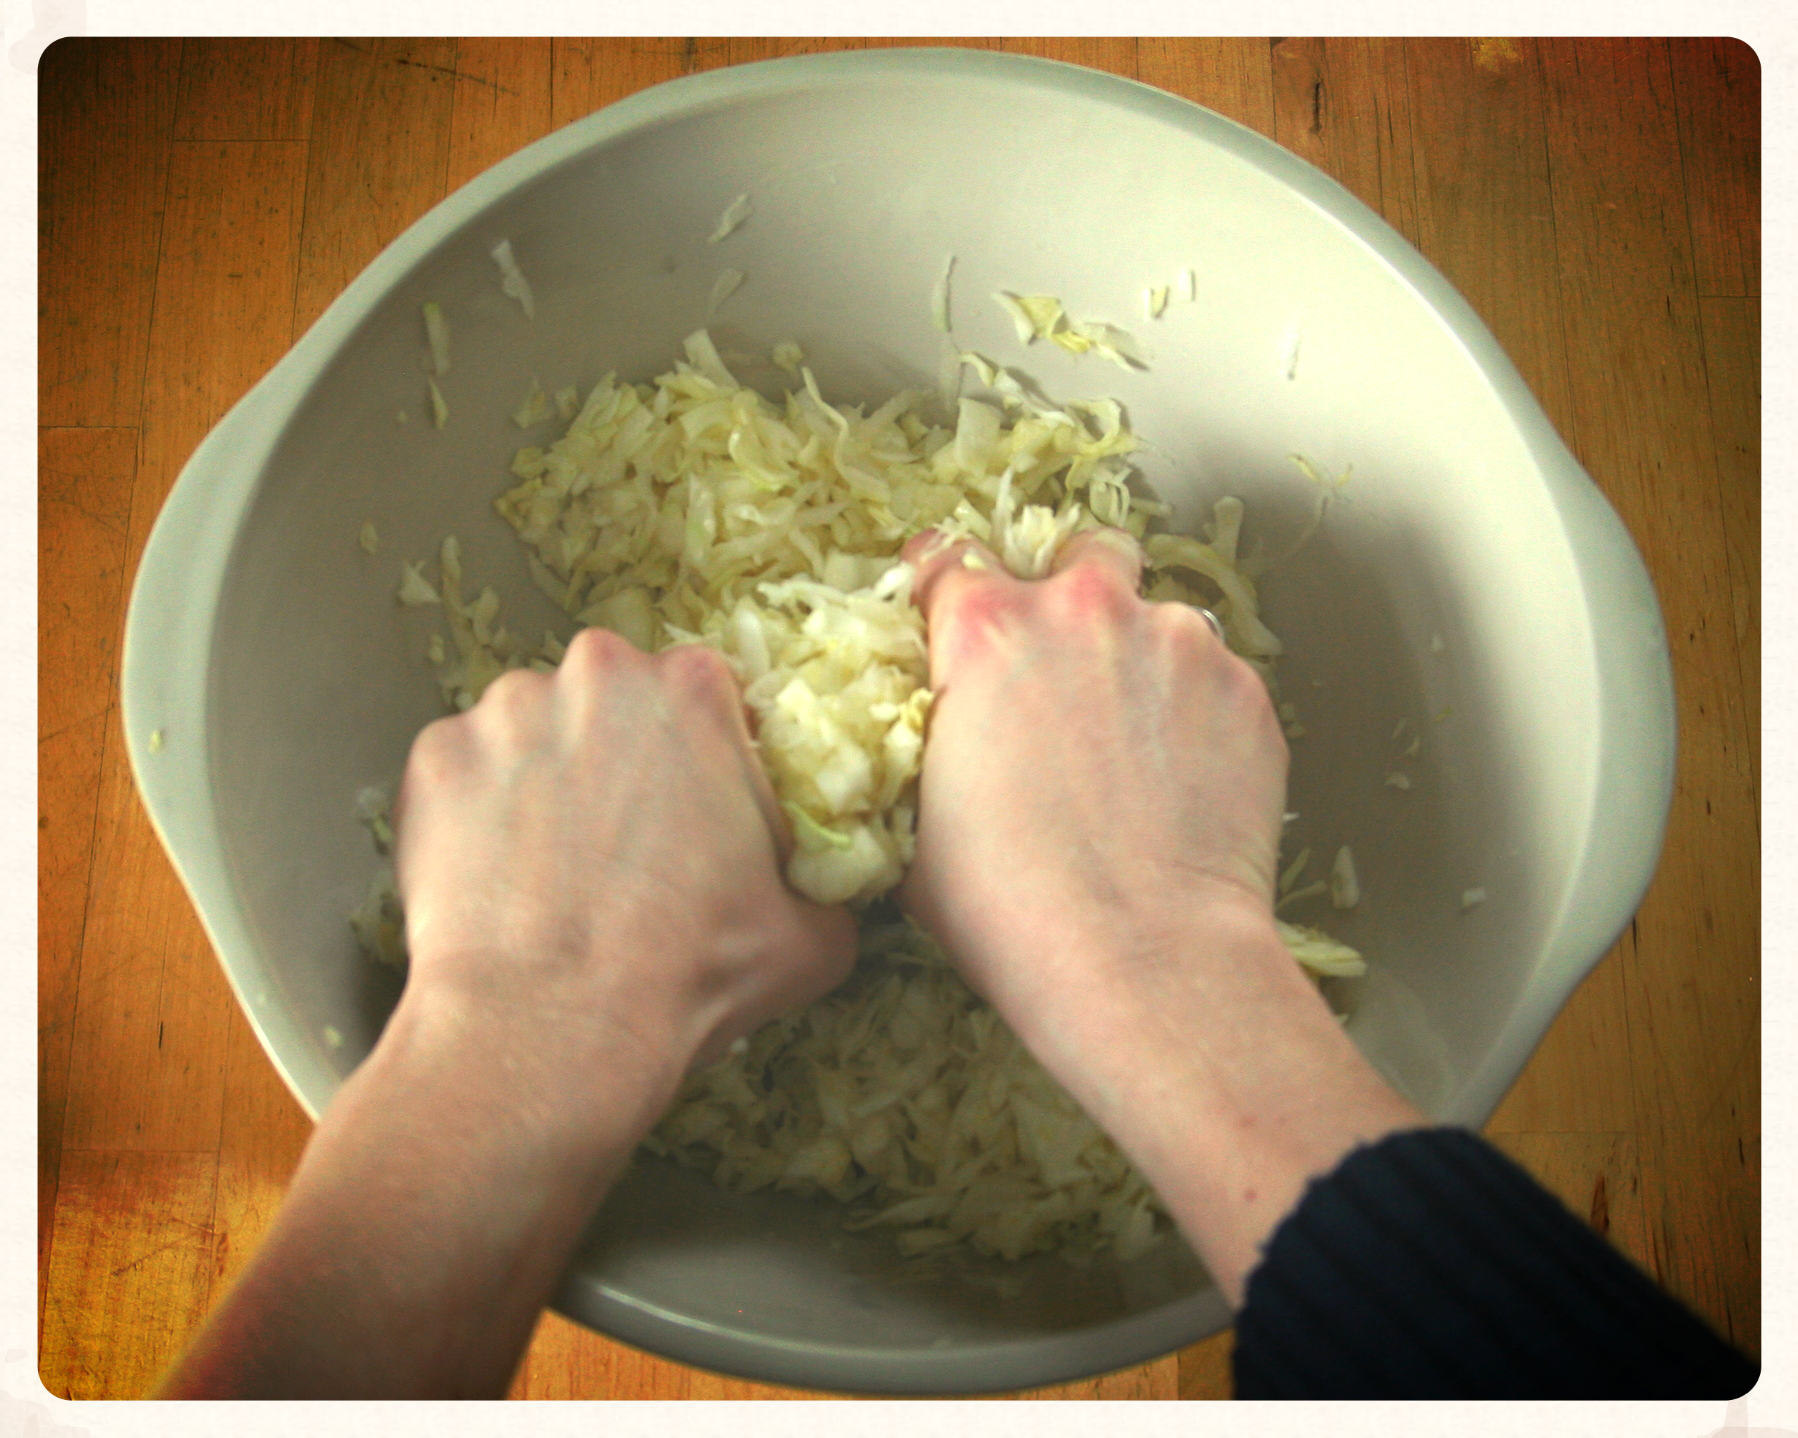 SQUEEZE that cabbage like a pro